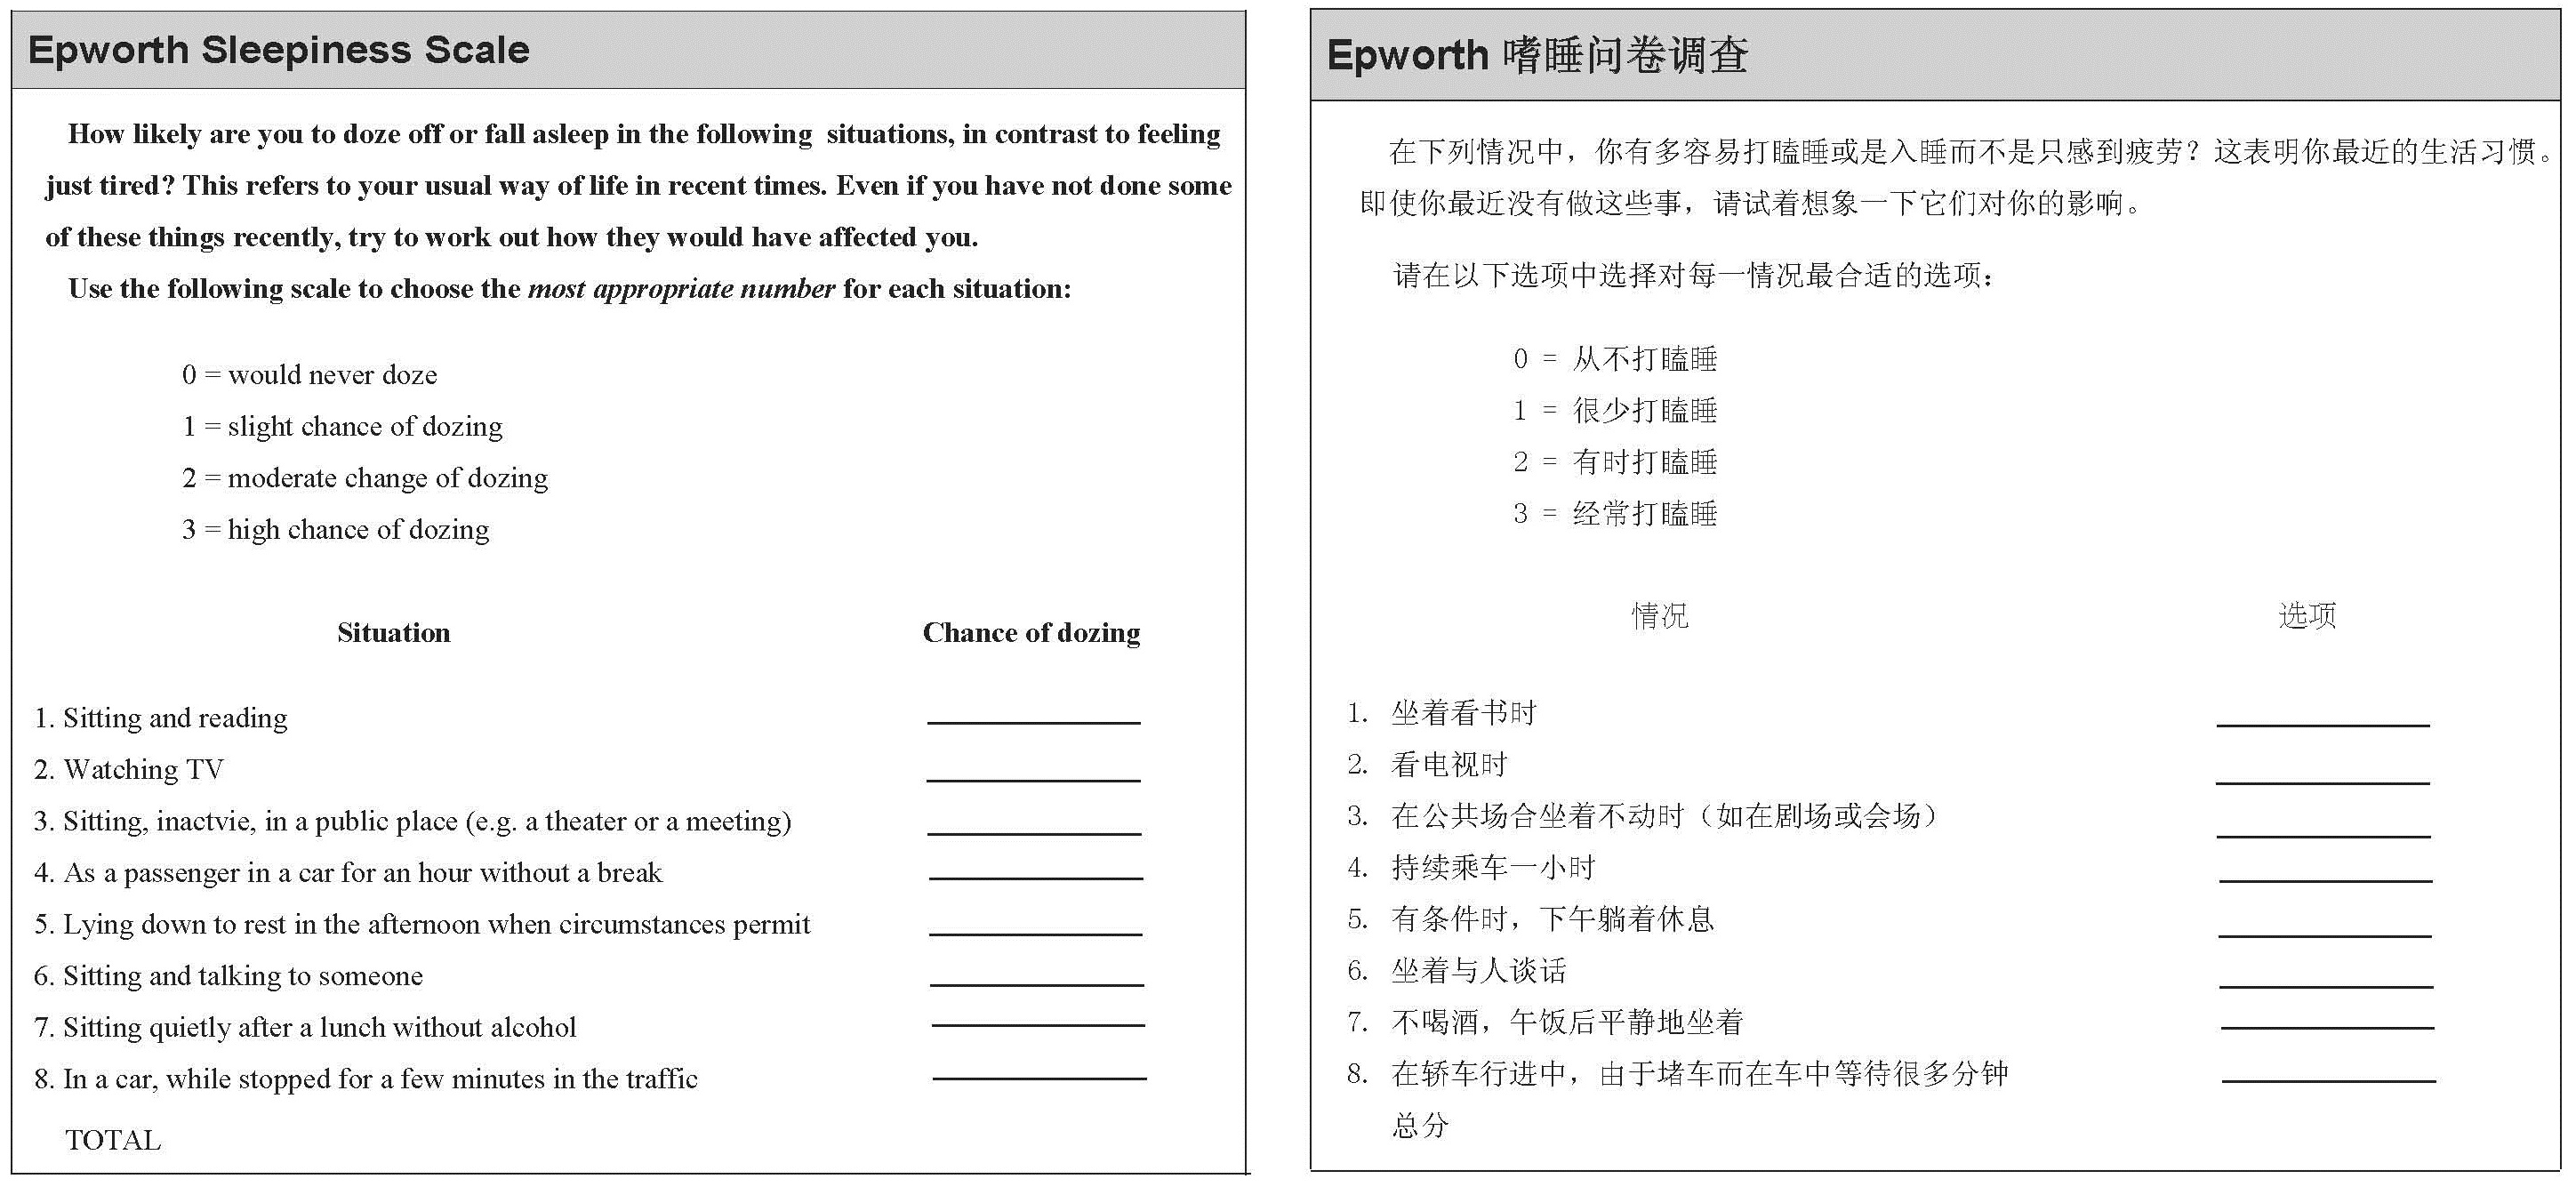 Excessive daytime sleepiness assessed by the Epworth Sleepiness ...